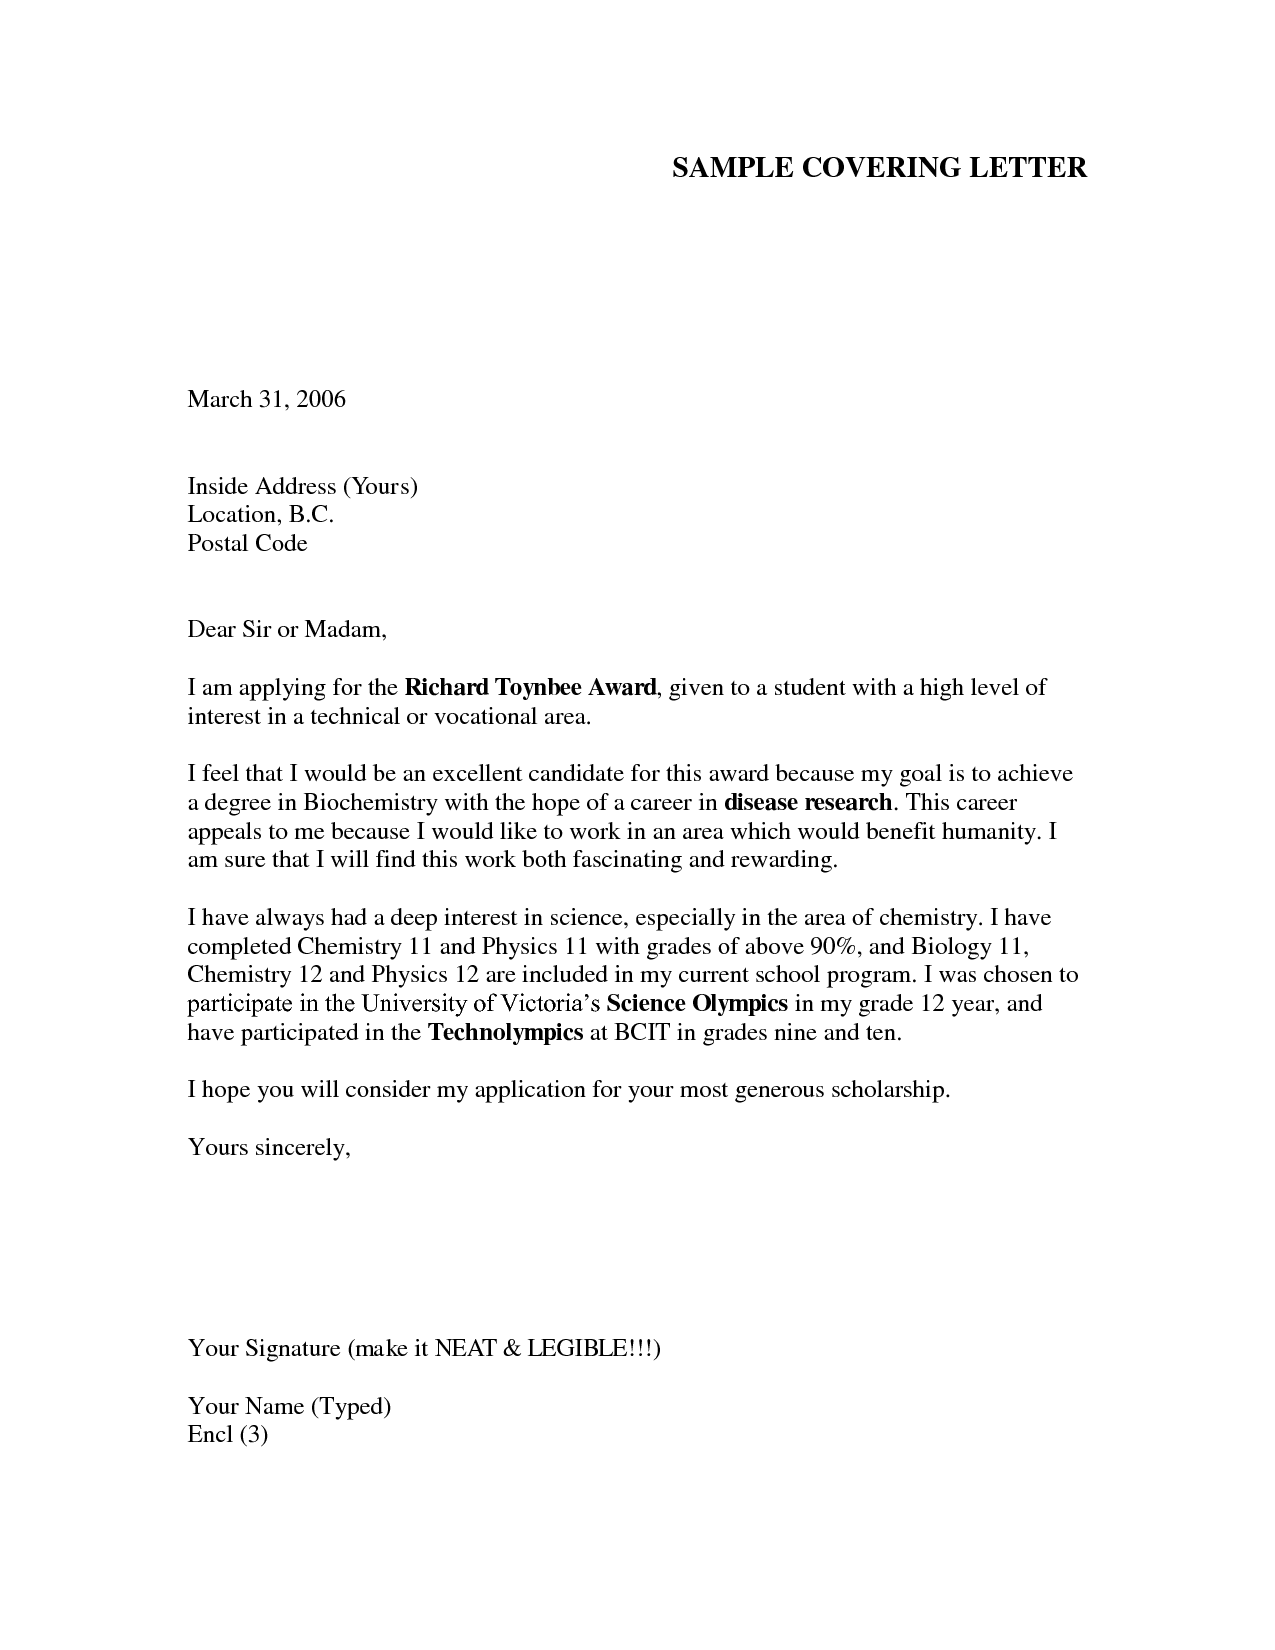 Cover Letter Format Creating An Executive Cover Letter Before